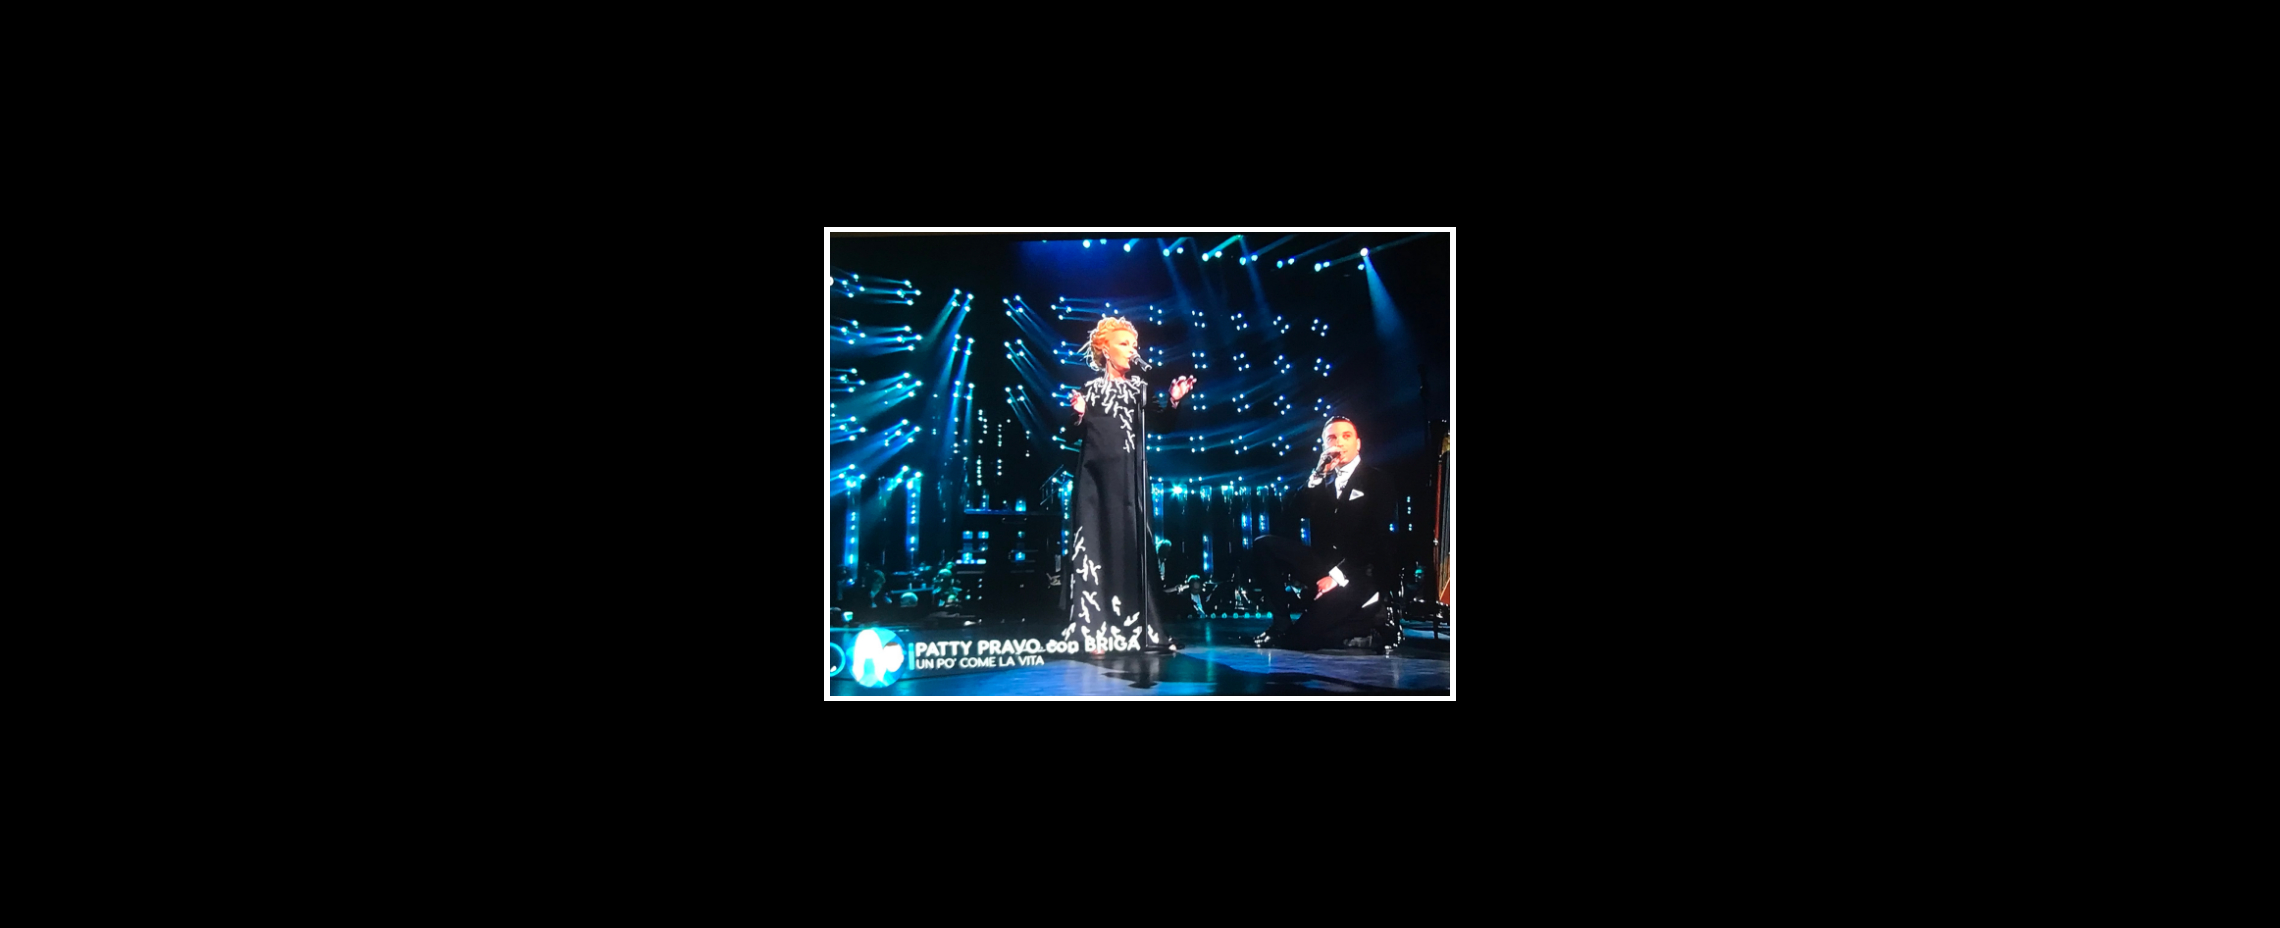 Patty Pravo SANREMO 2018